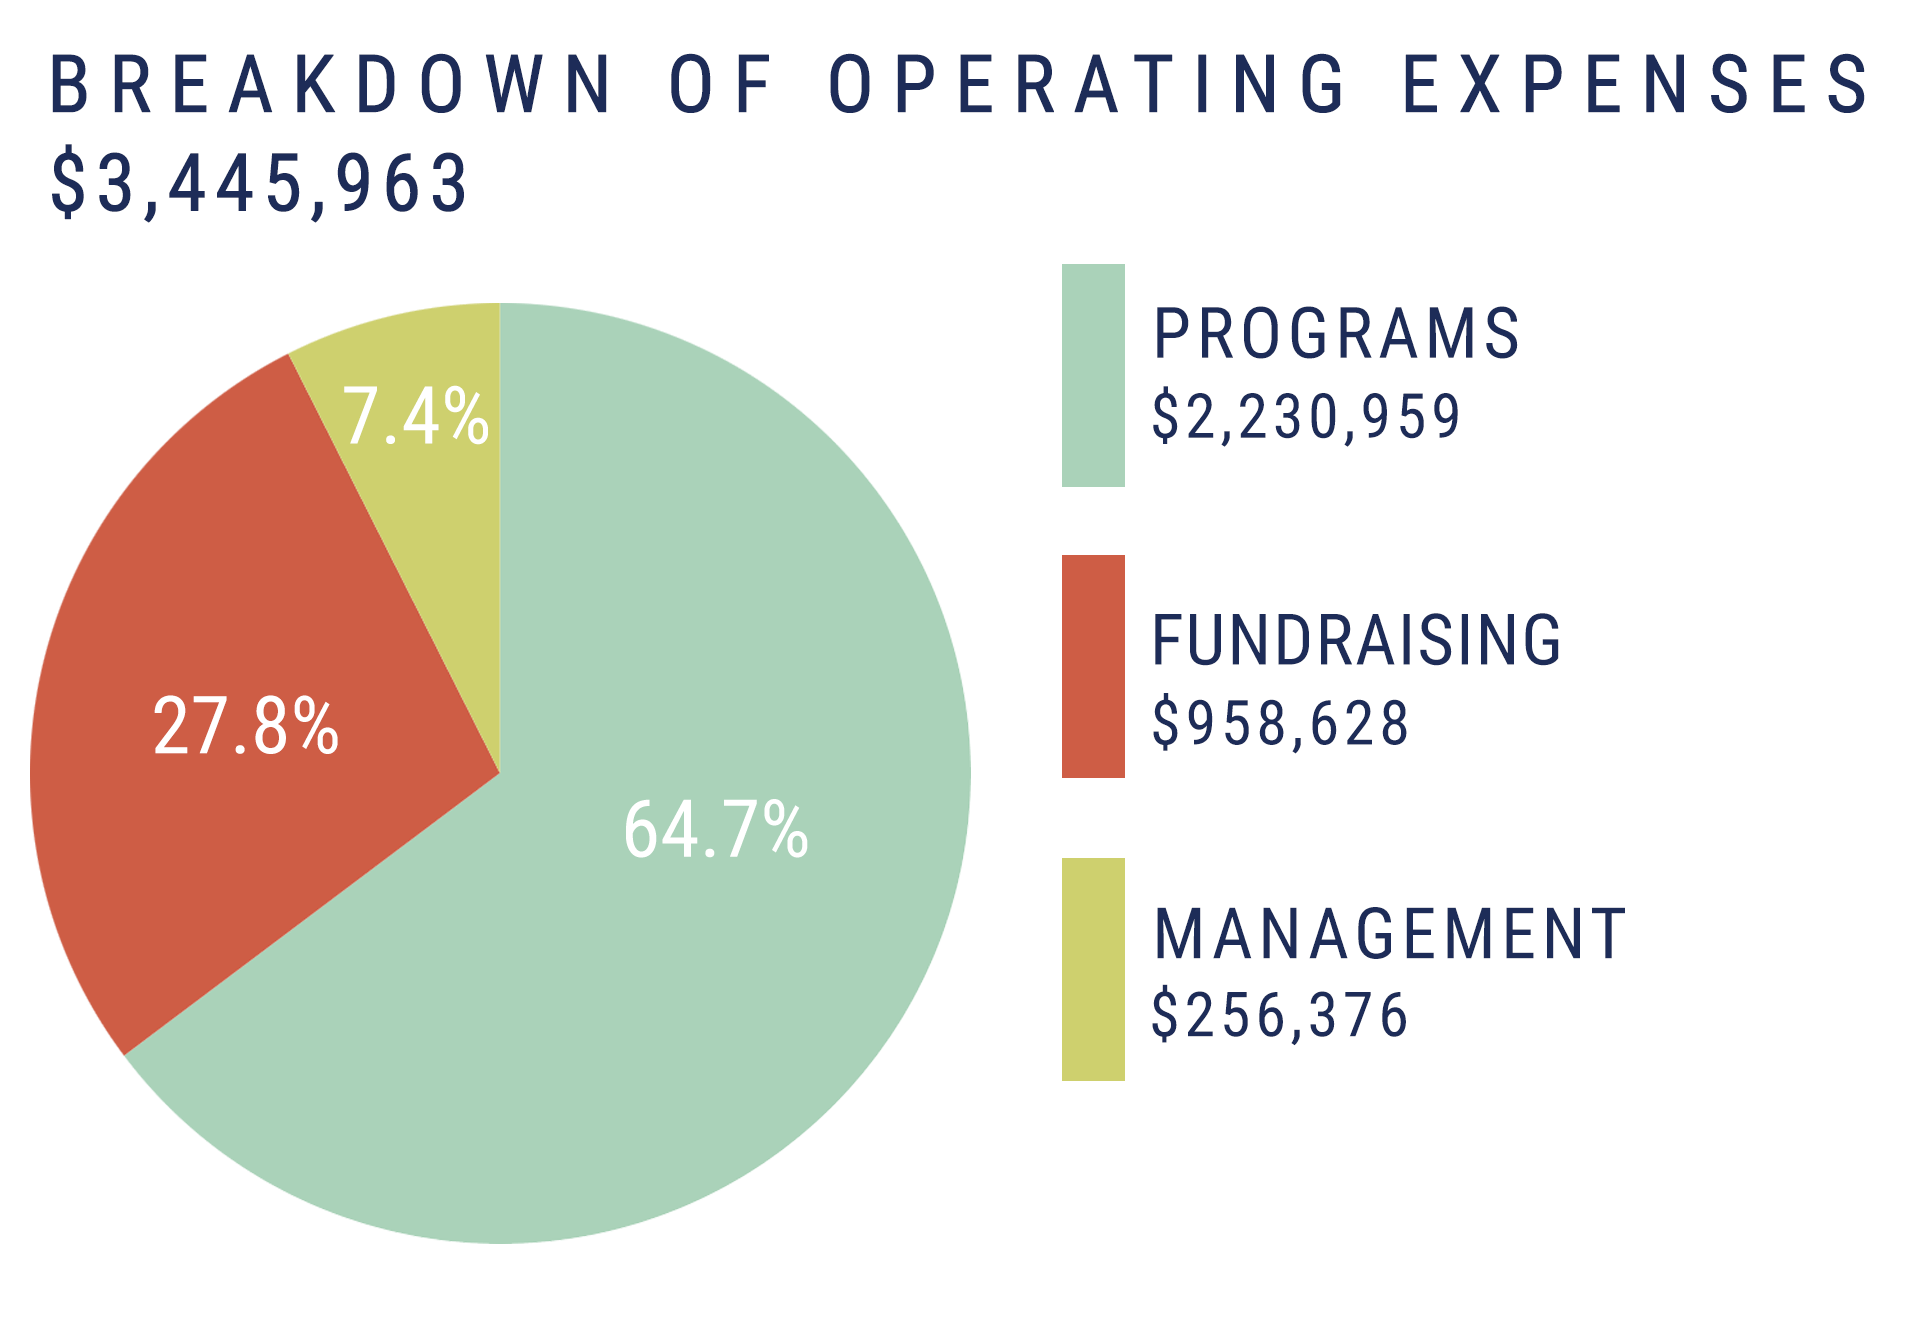 pie-chart_breakdown-of-operating-expenses2019_c